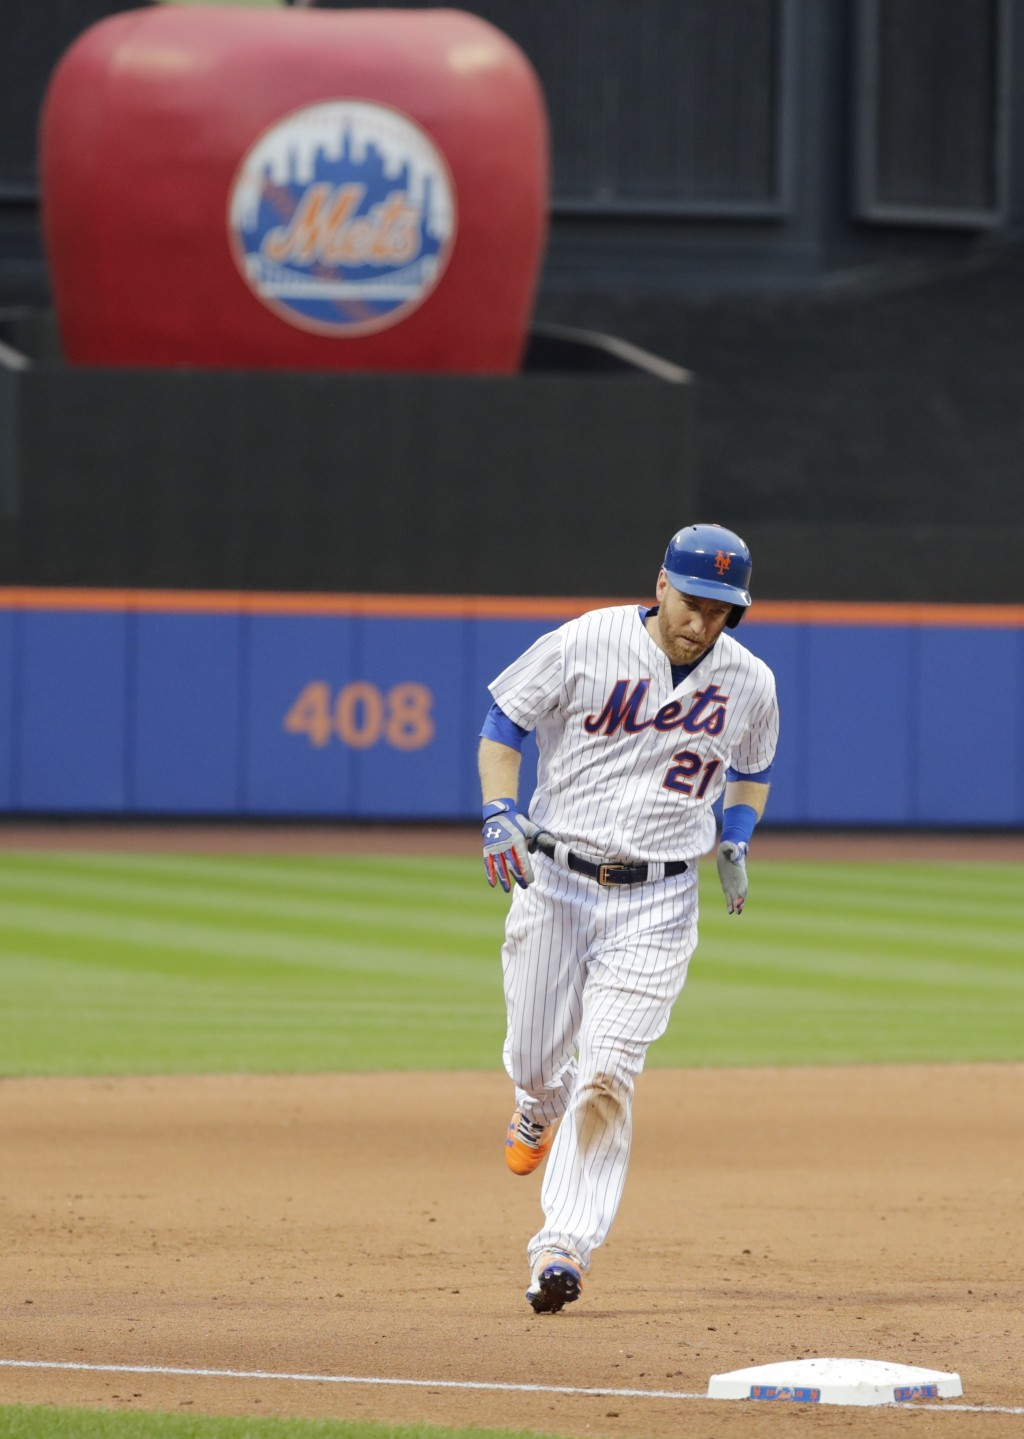 New York Mets' Todd Frazier (21) runs the bases after hitting a walkoff home run during the ninth inning of the first baseball game of a doubleheader